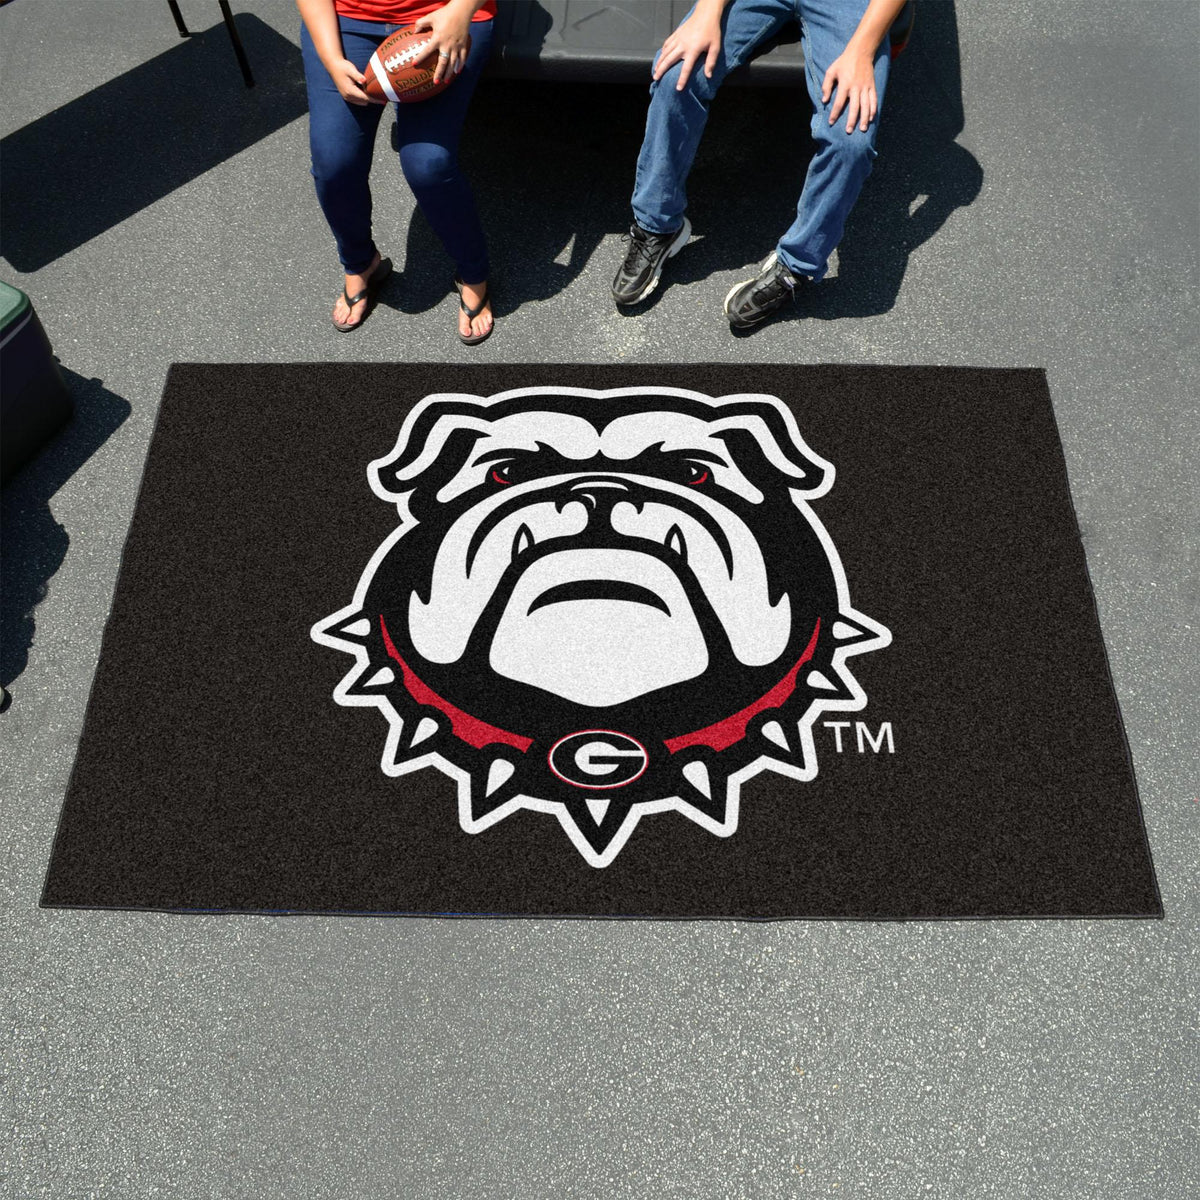 Collegiate - Ulti-Mat: A - L Collegiate Mats, Rectangular Mats, Ulti-Mat, Collegiate, Home Fan Mats Georgia 4